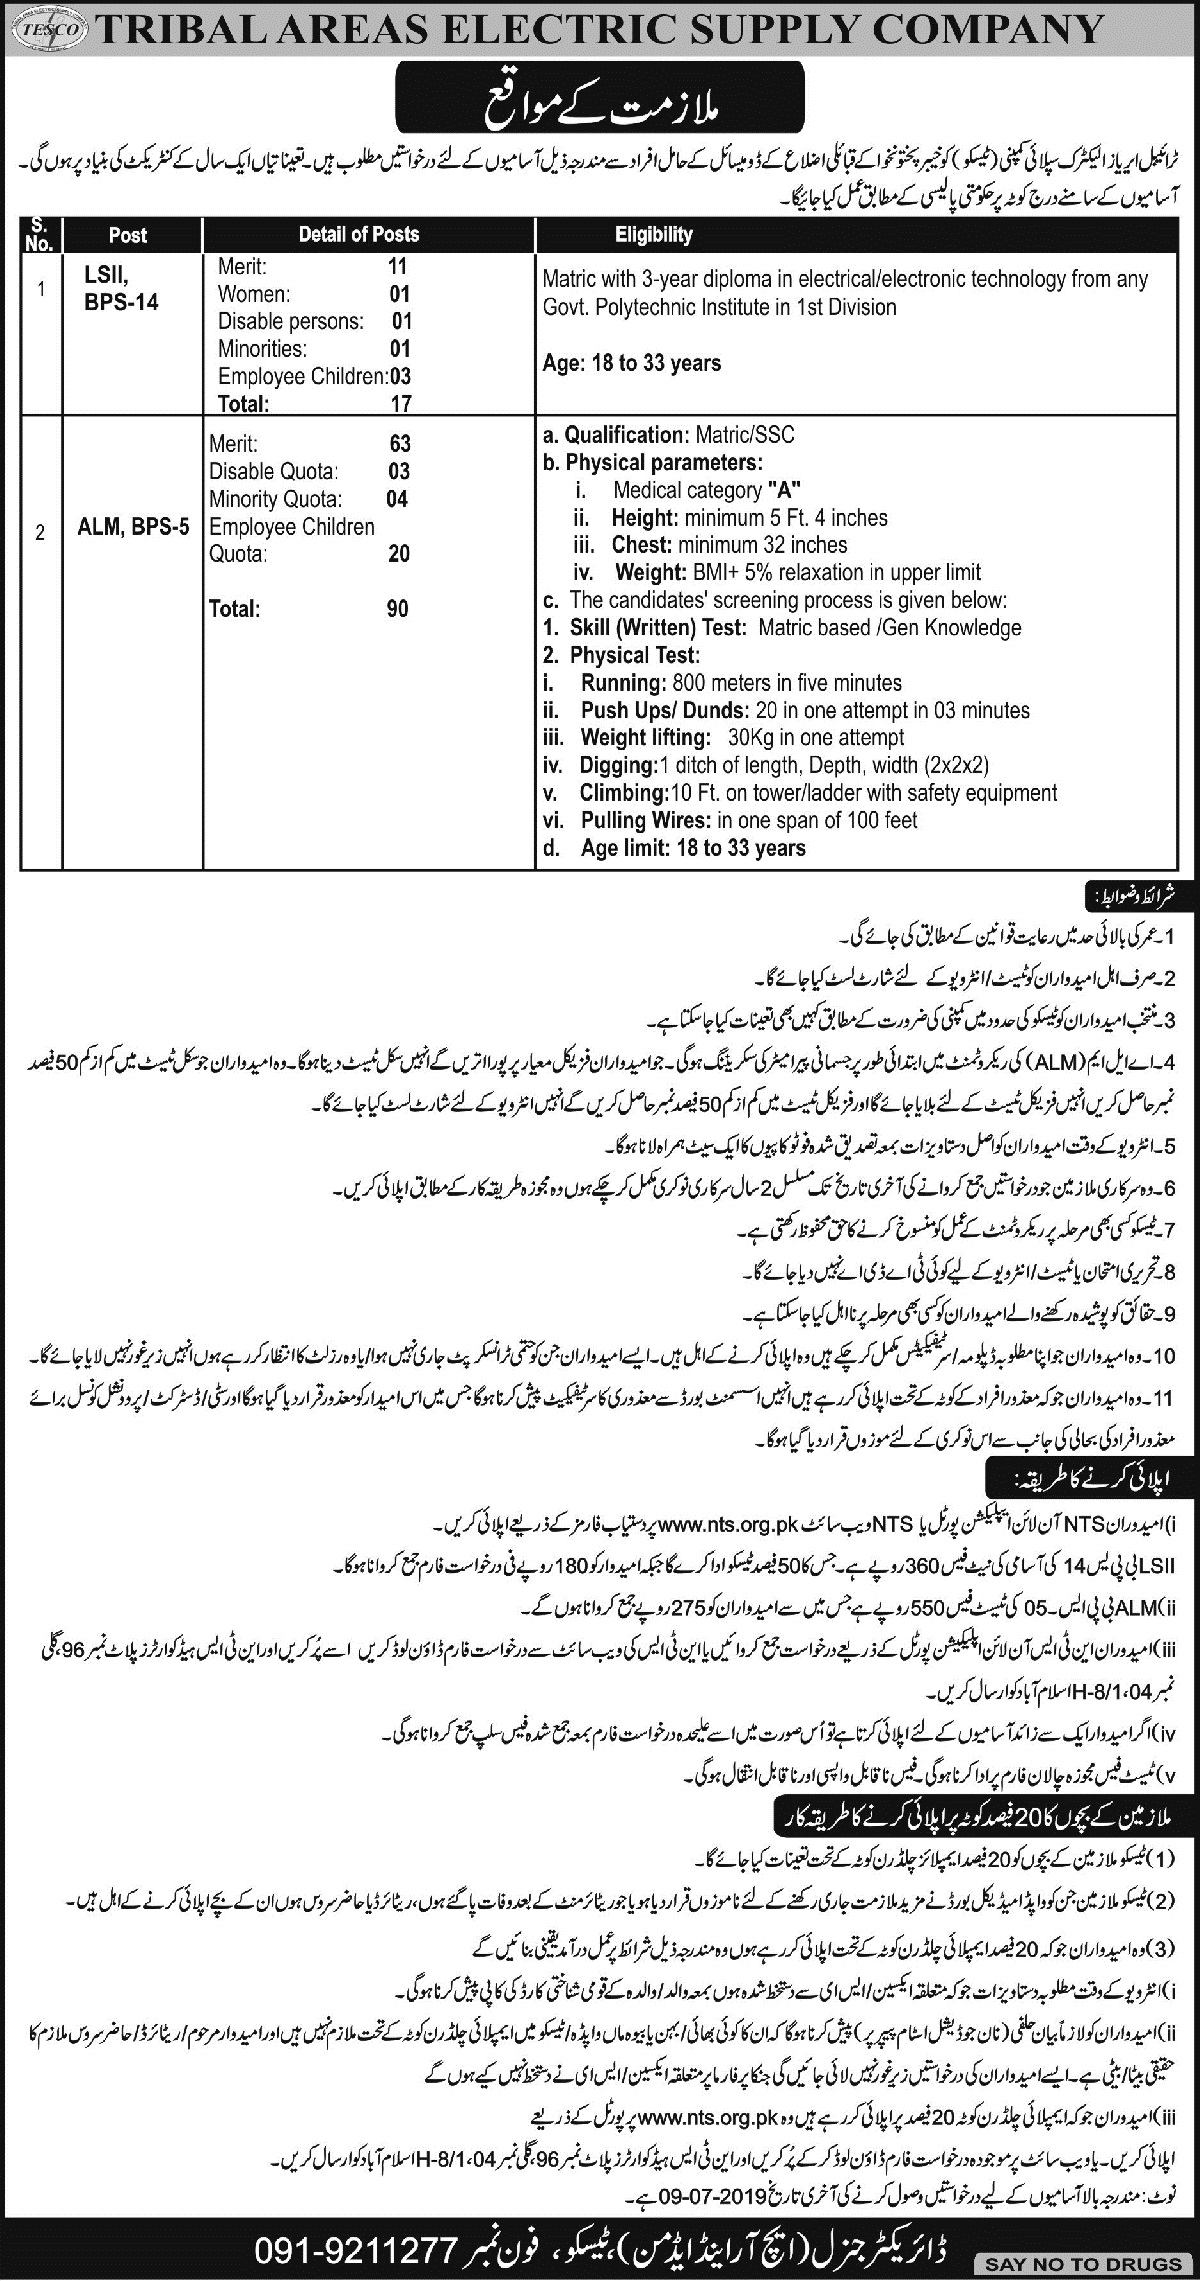 Tribal Areas Electric Supply Company TESCO Jobs NTS Test Roll No Slip Physical Test for the Post of ALM